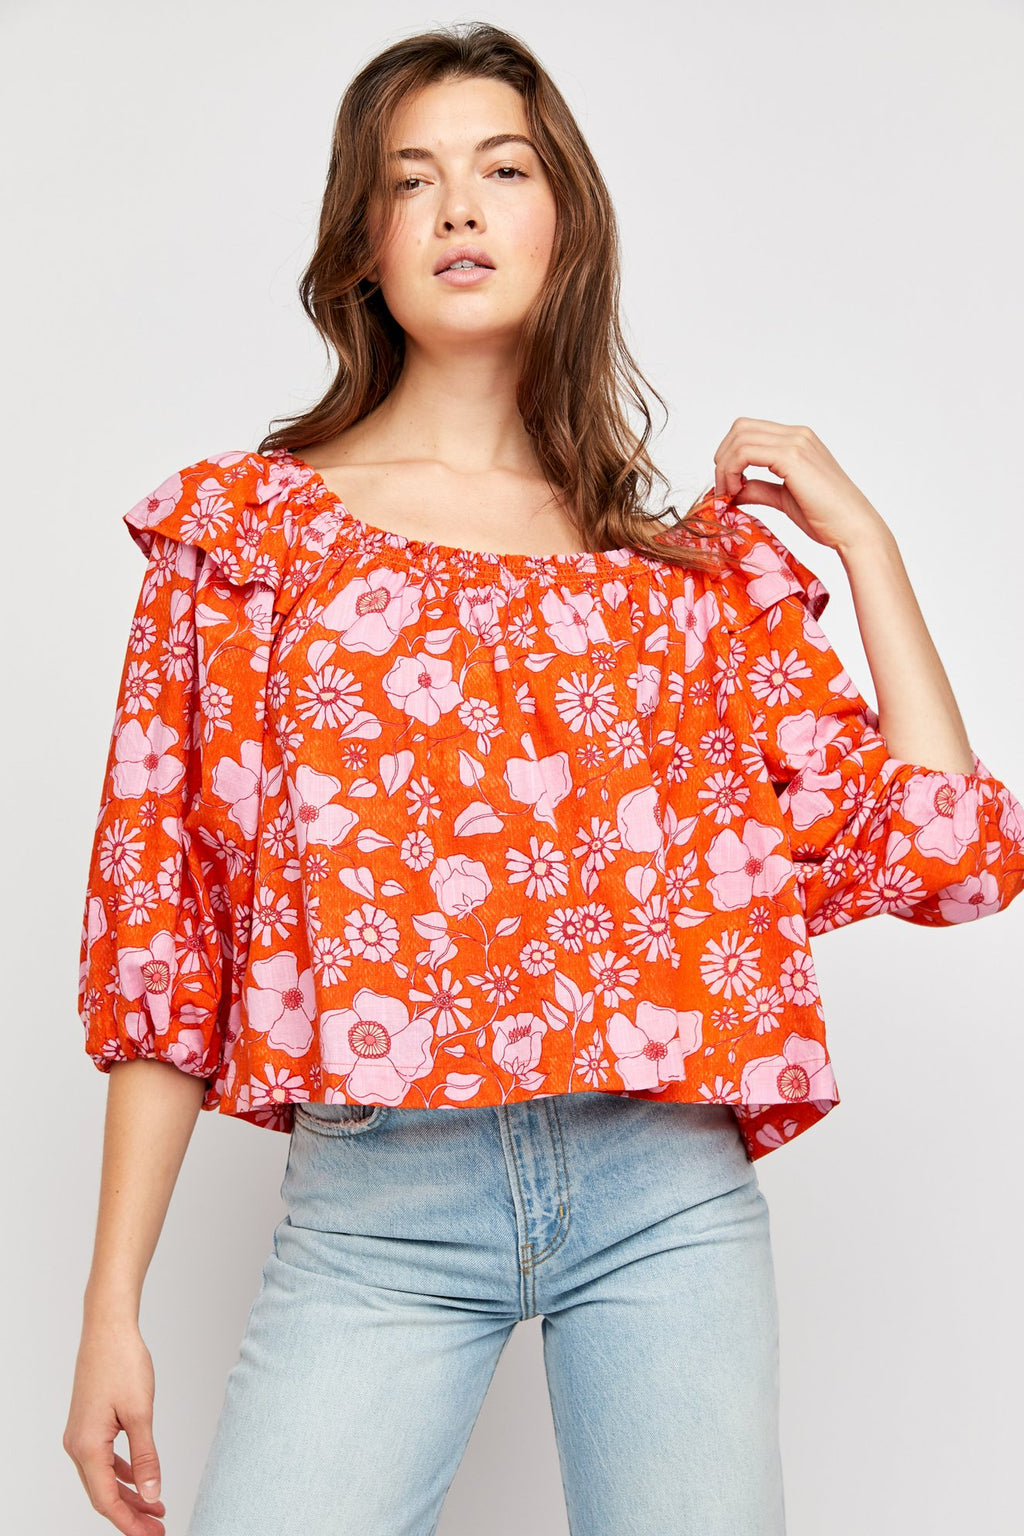 Miss Daisy Printed Top Heat Wave